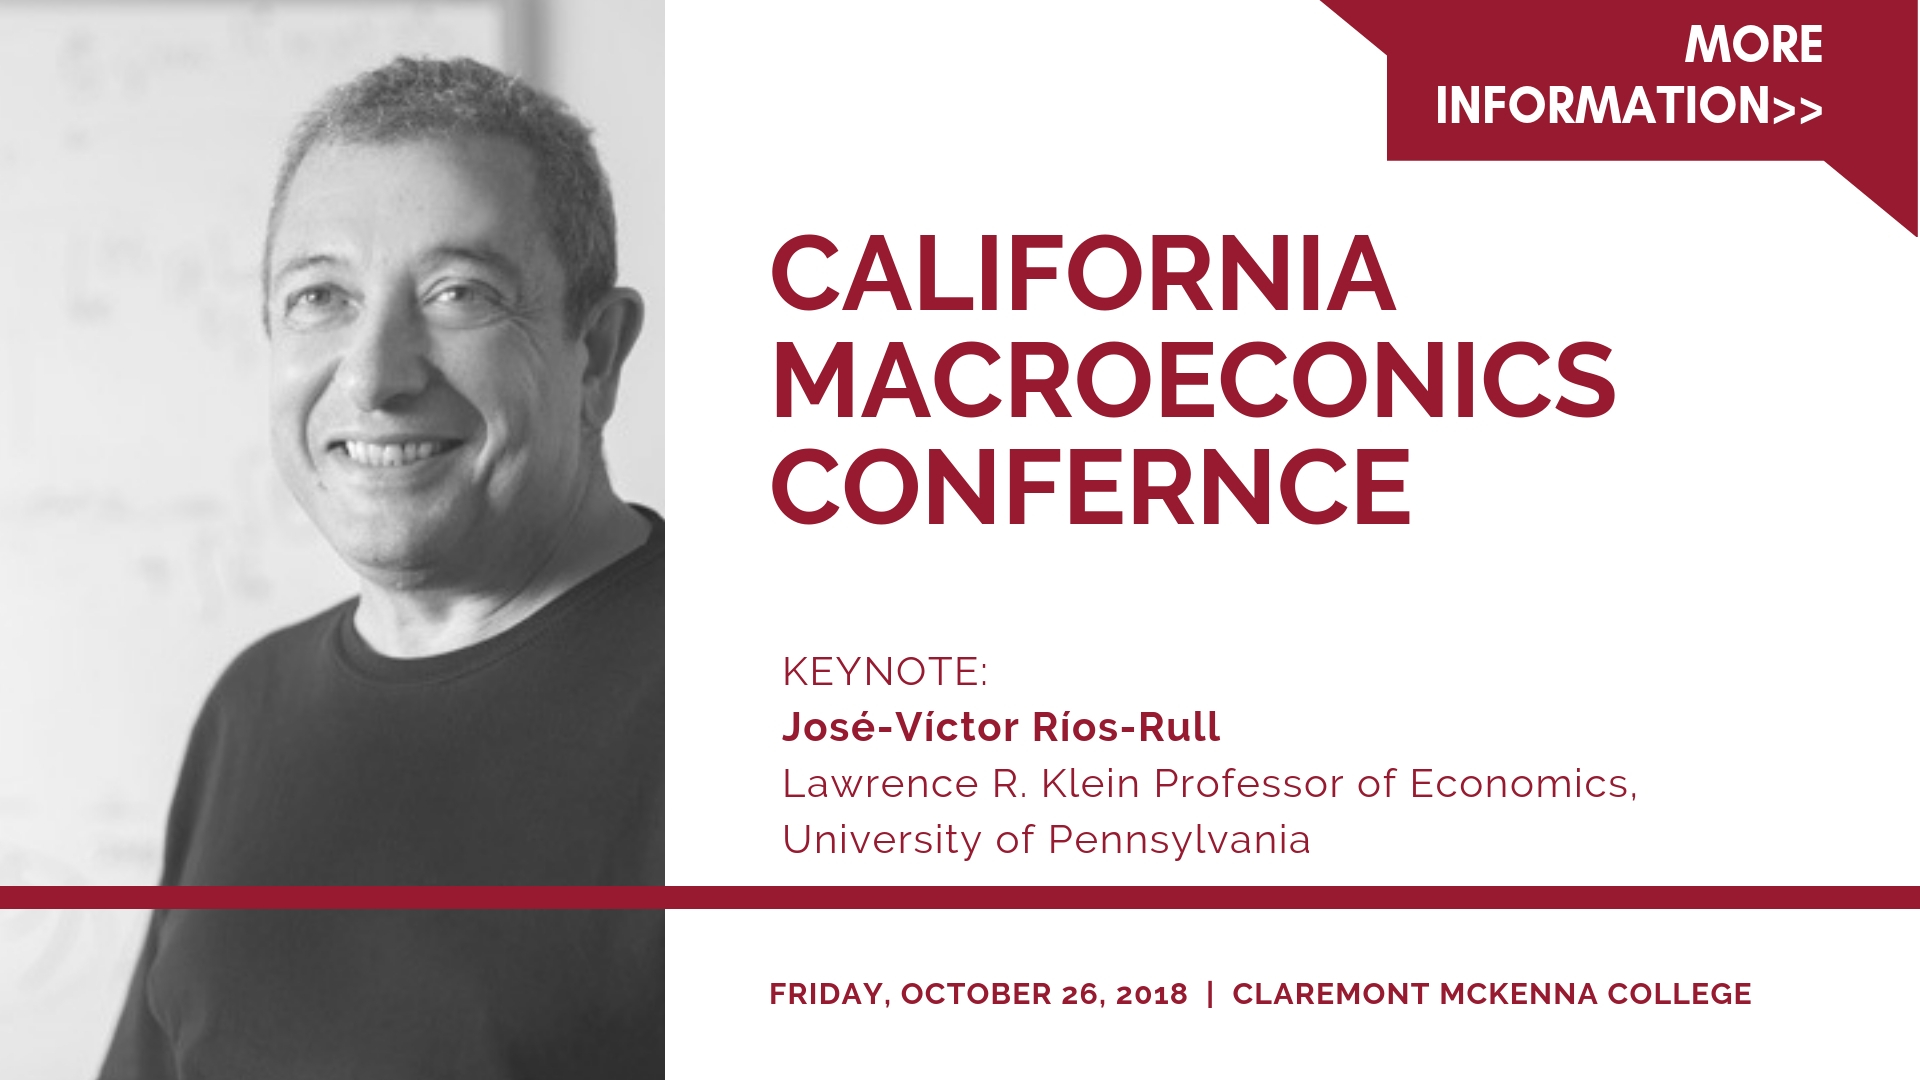 CAL MACRO CONF – REGISTER NOW (1)